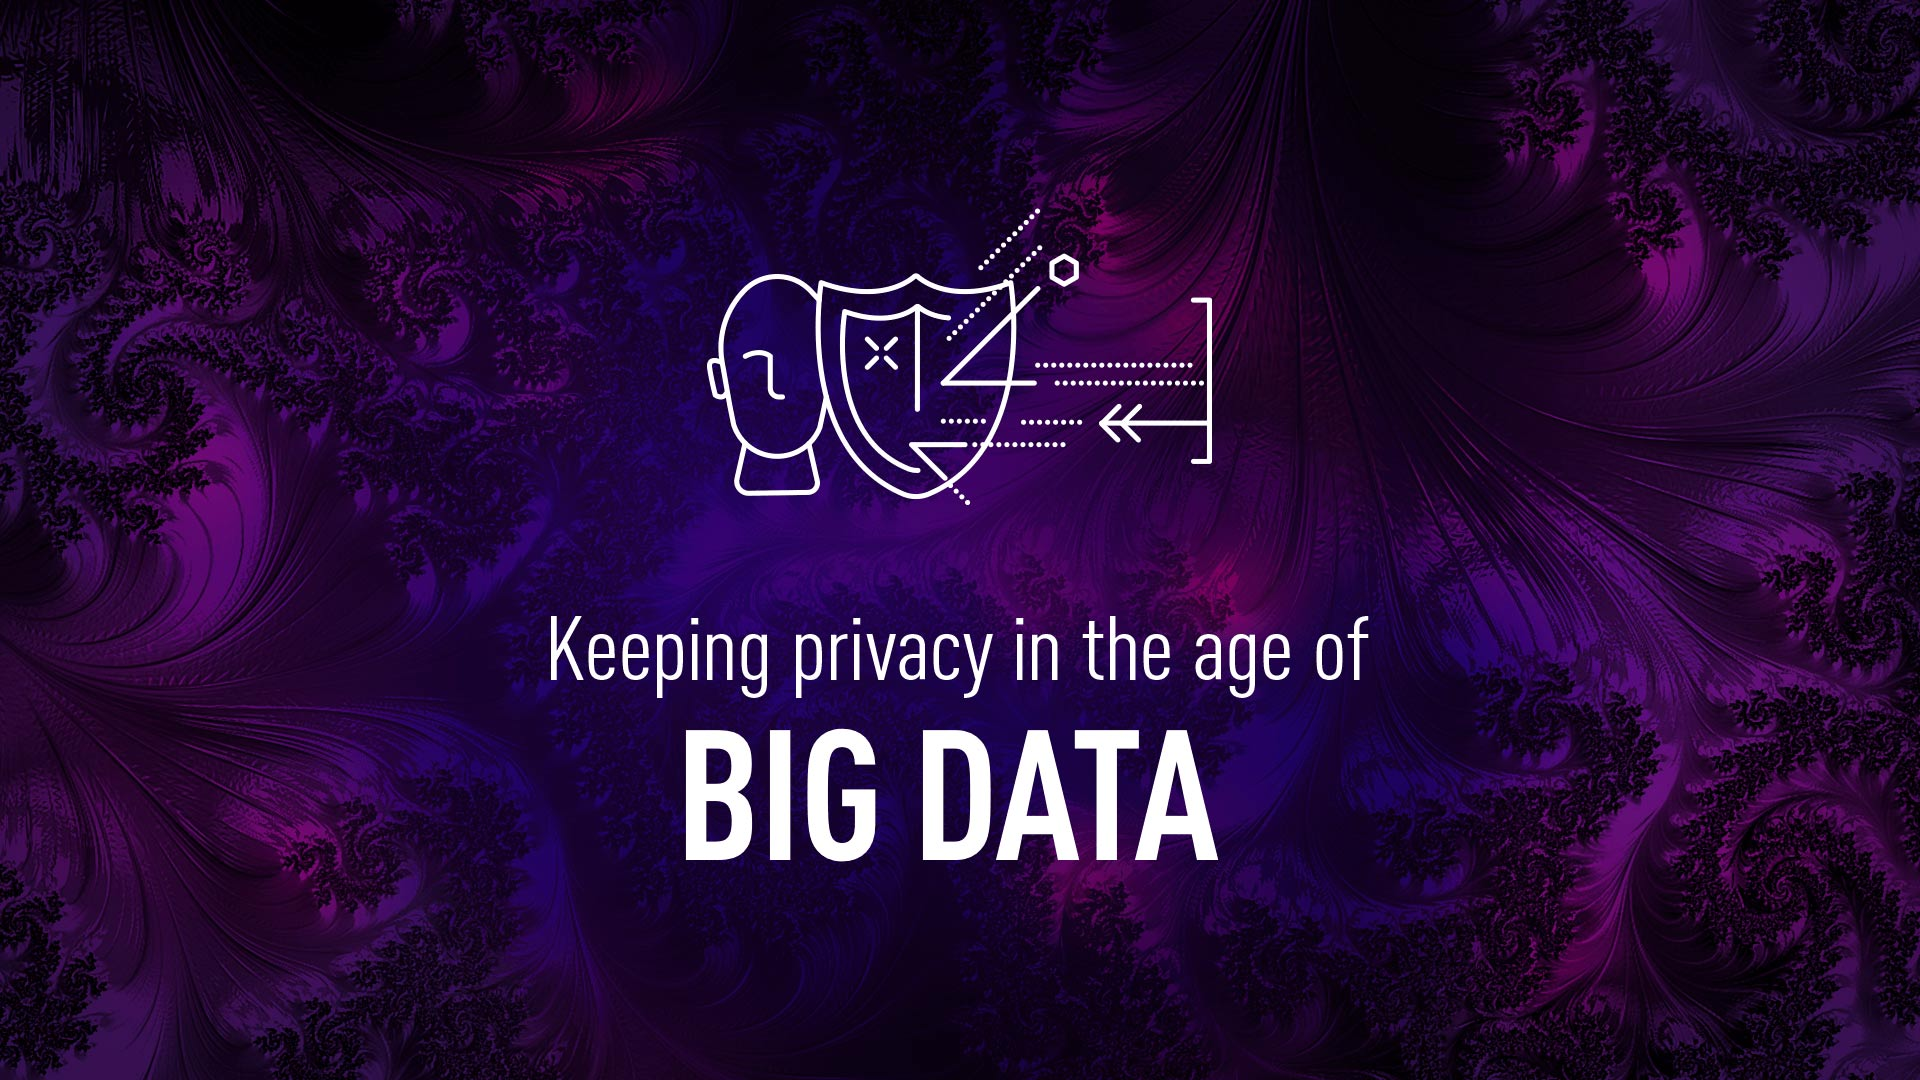 Keeping data privacy in the age of Big Data